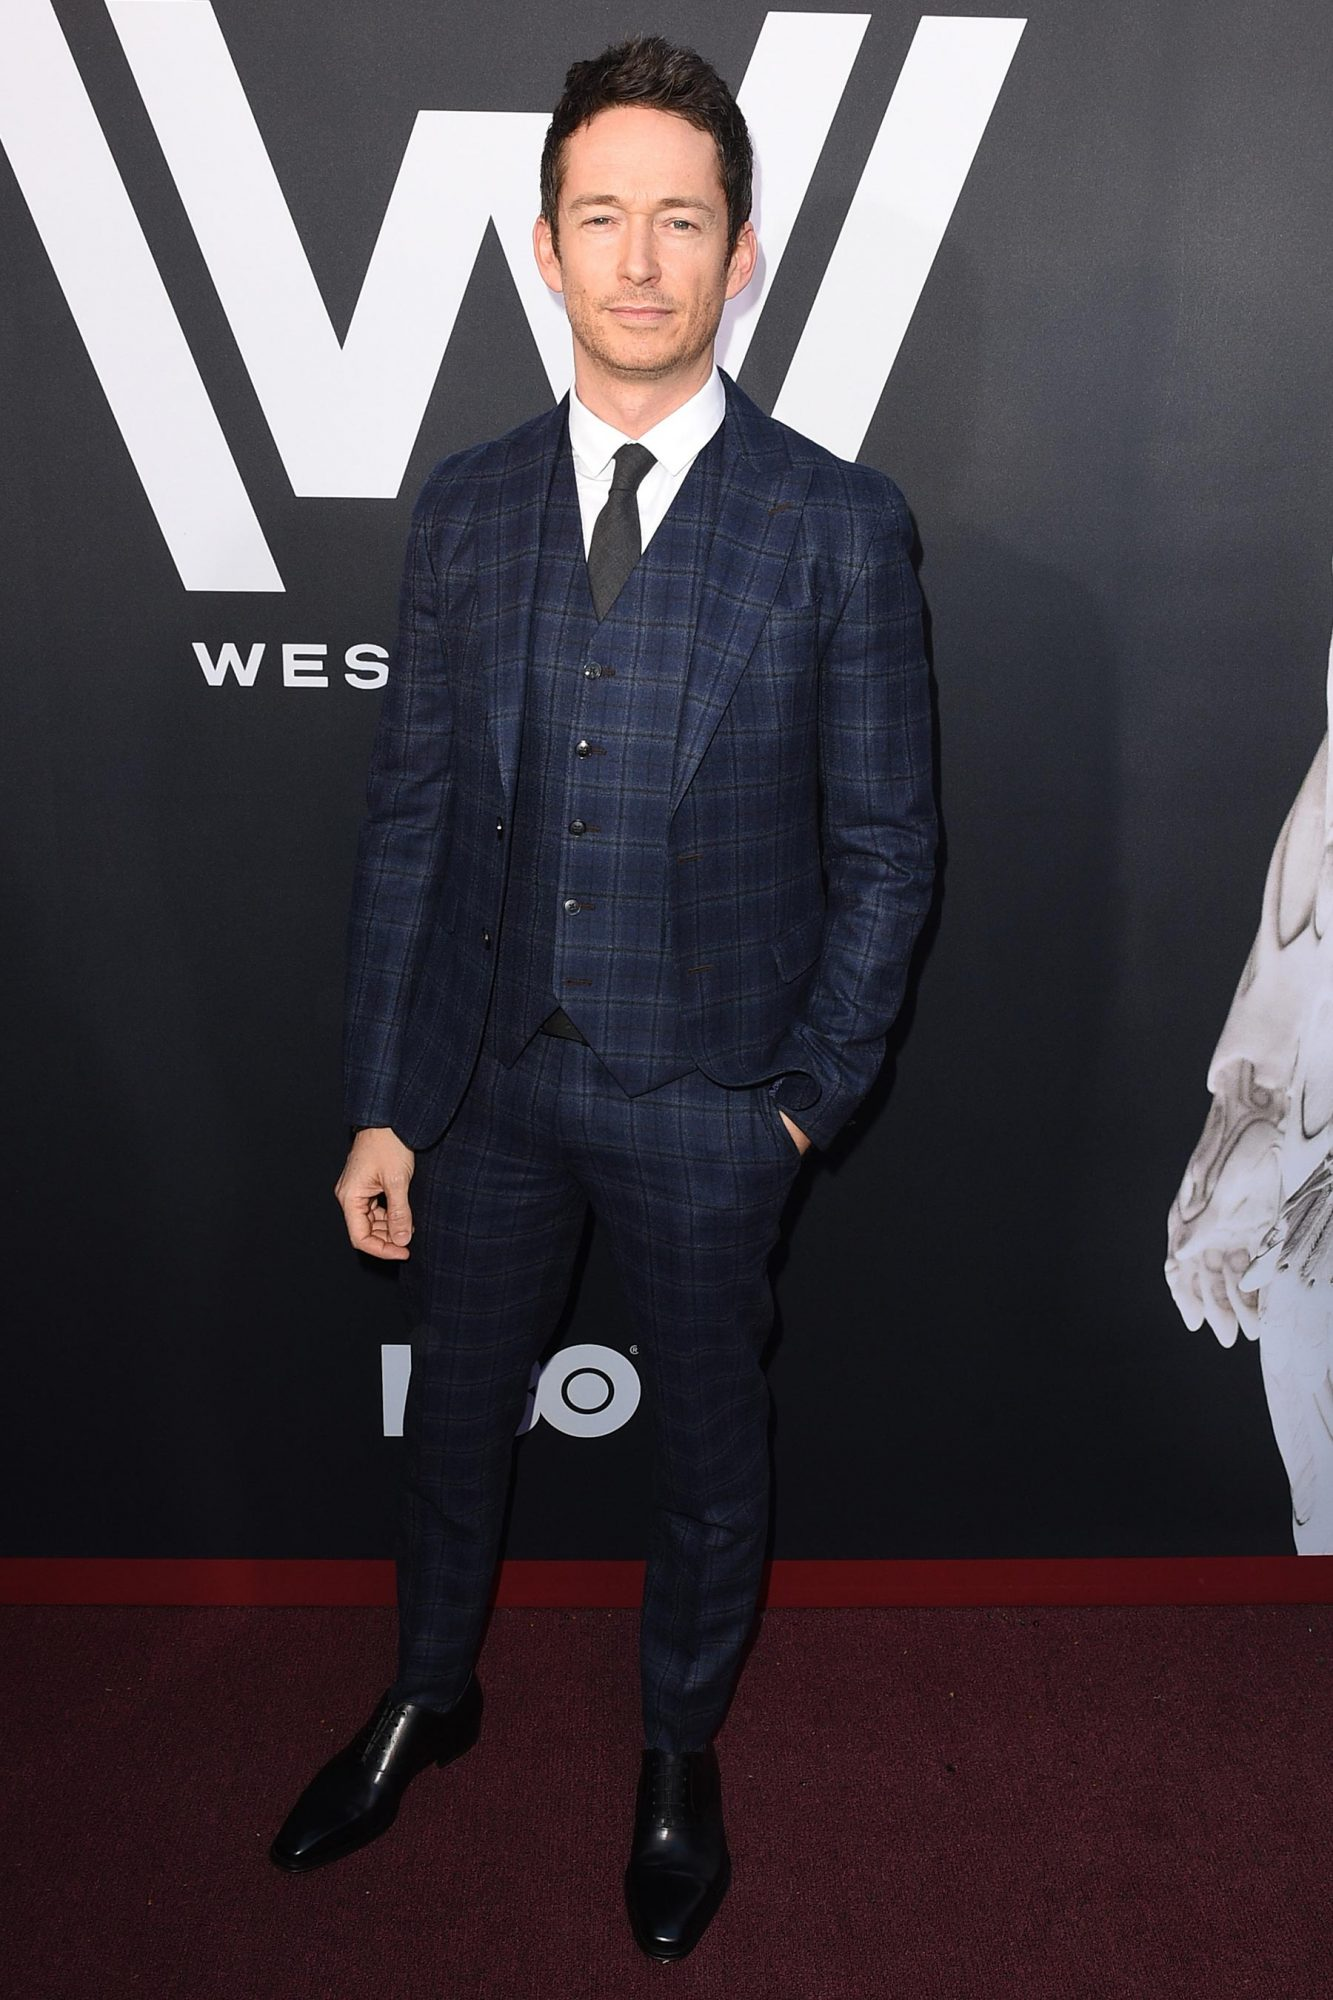 Los Angeles Season 2 Premiere of the HBO Drama Series WESTWORLD